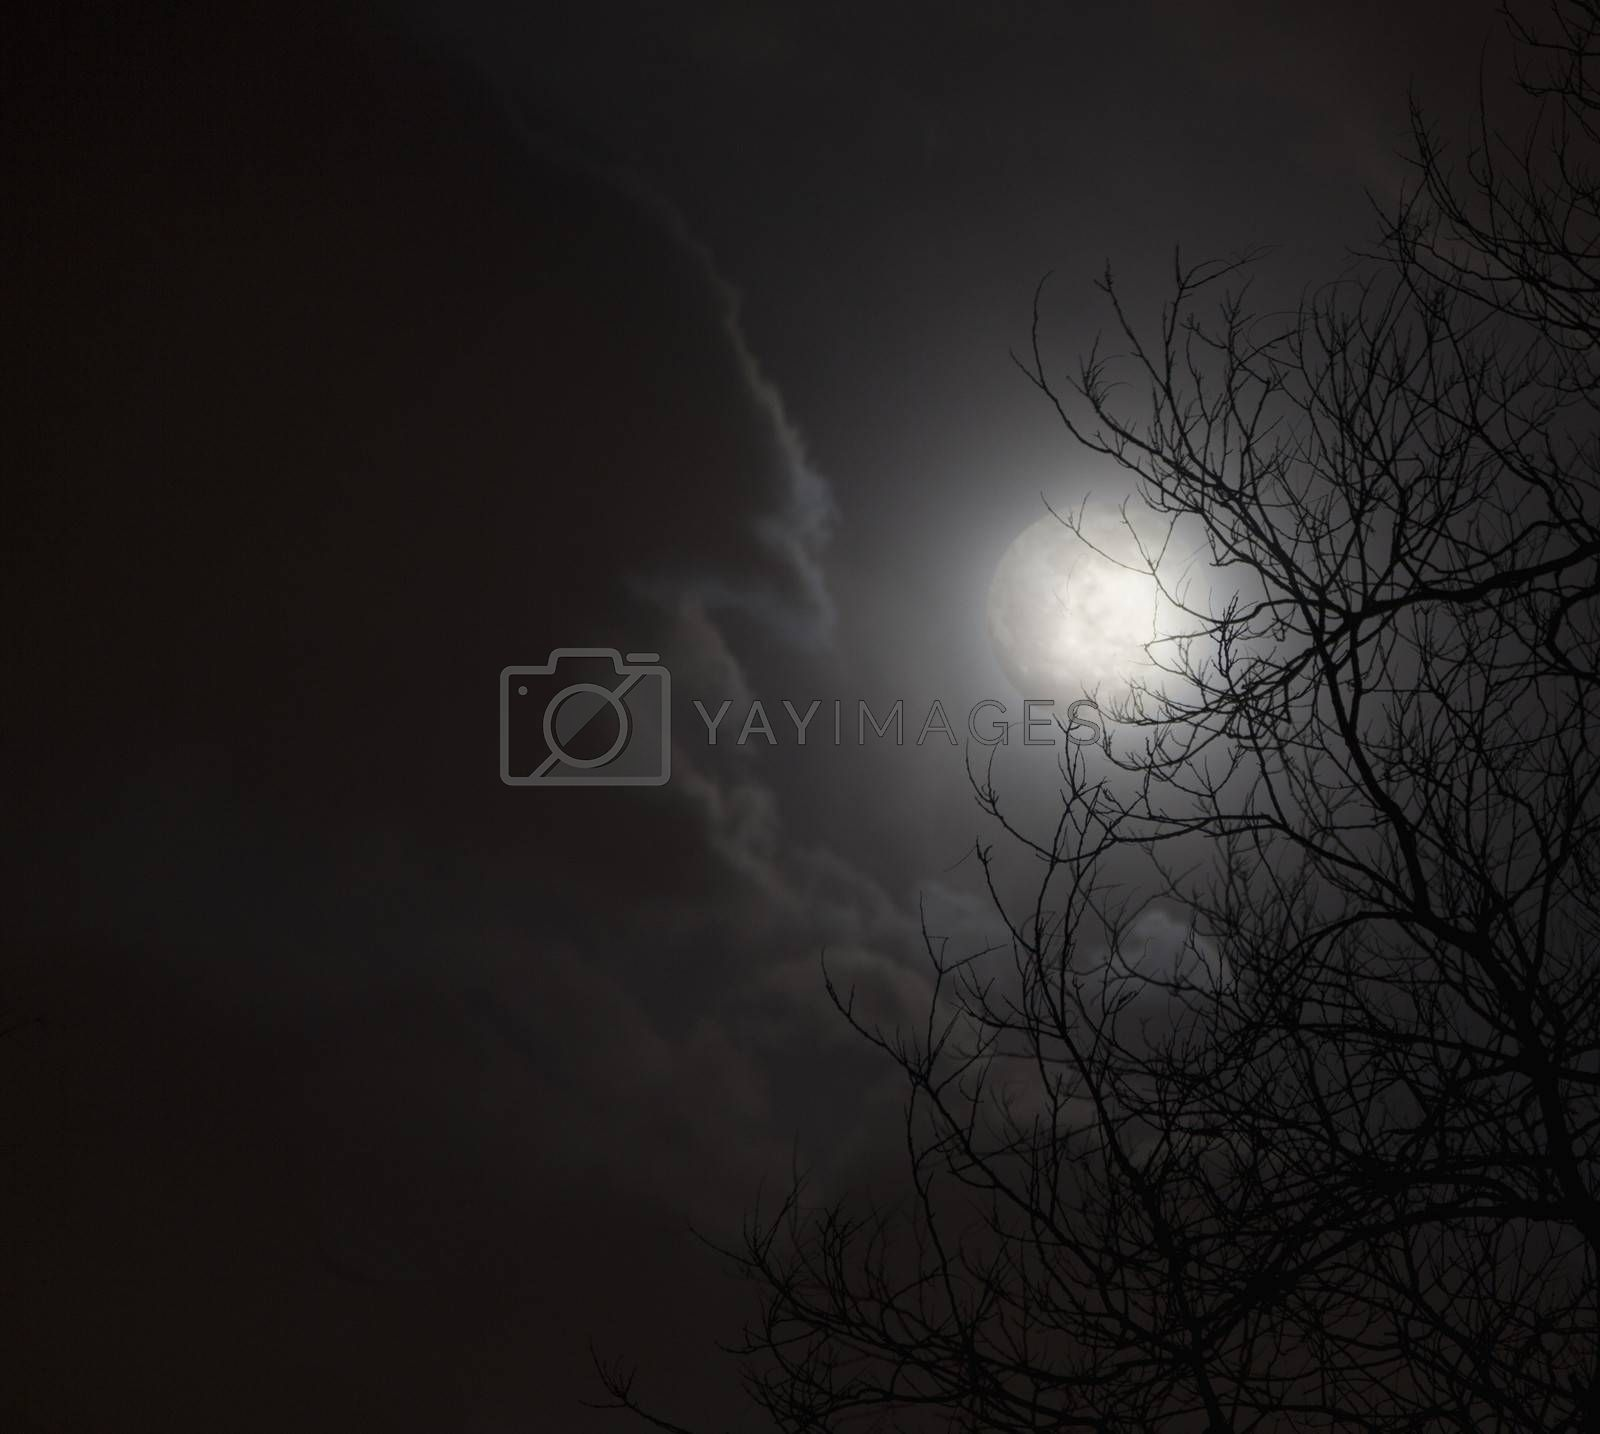 Full moon in night sky with clouds and silhouette of trees.